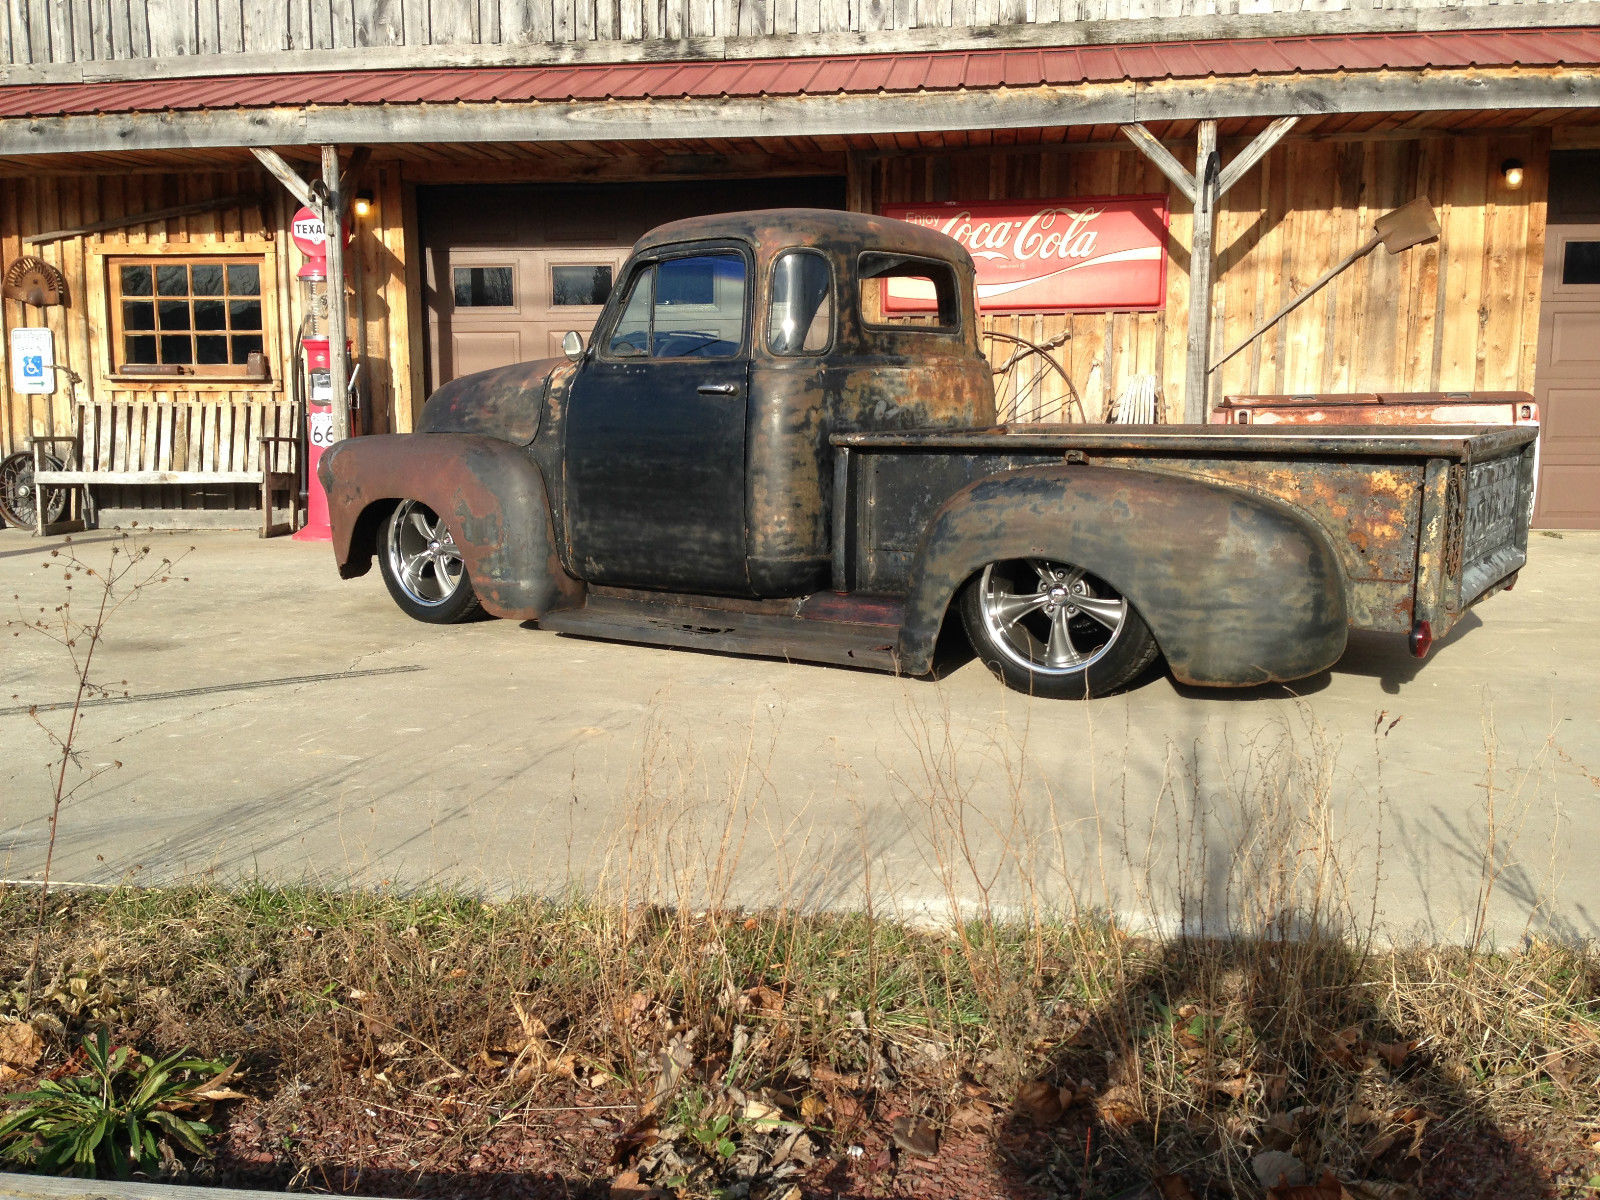 1955 Chevrolet 5 Win Ratrod Shop Truck Custom Lowrider 1947 48 49 50 Ford F100 51 52 53 54